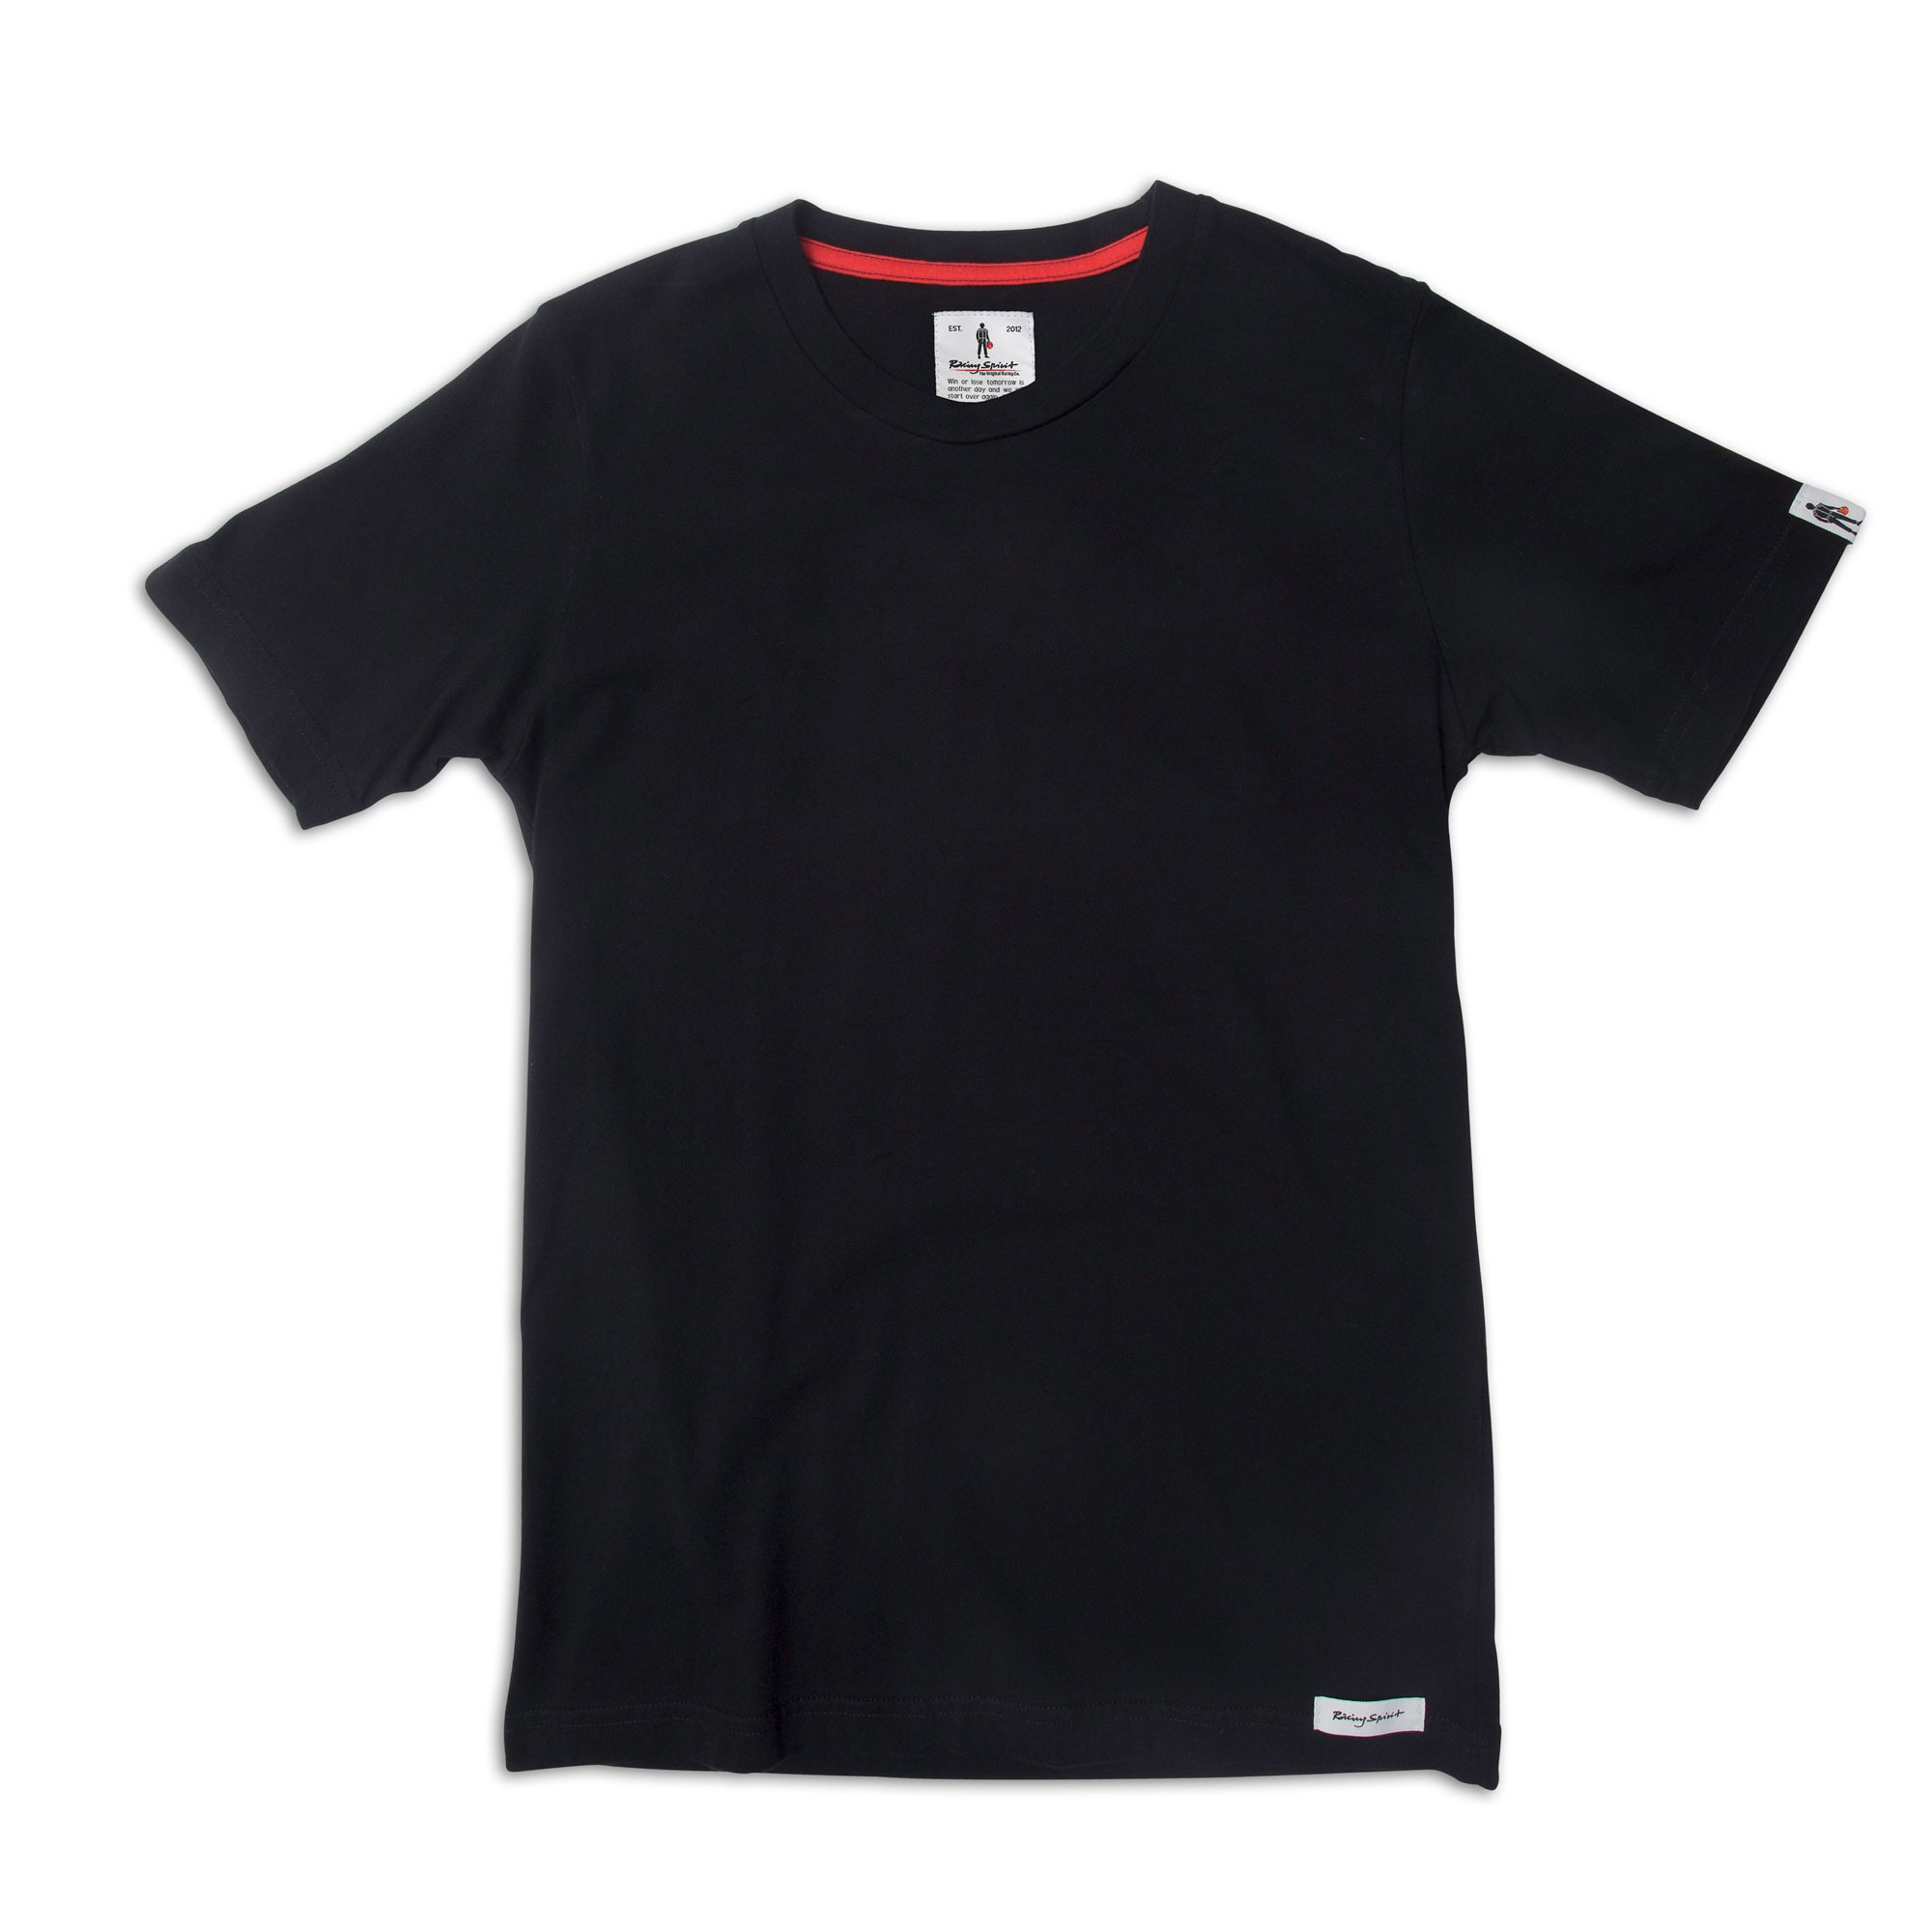 Essential Black Tee